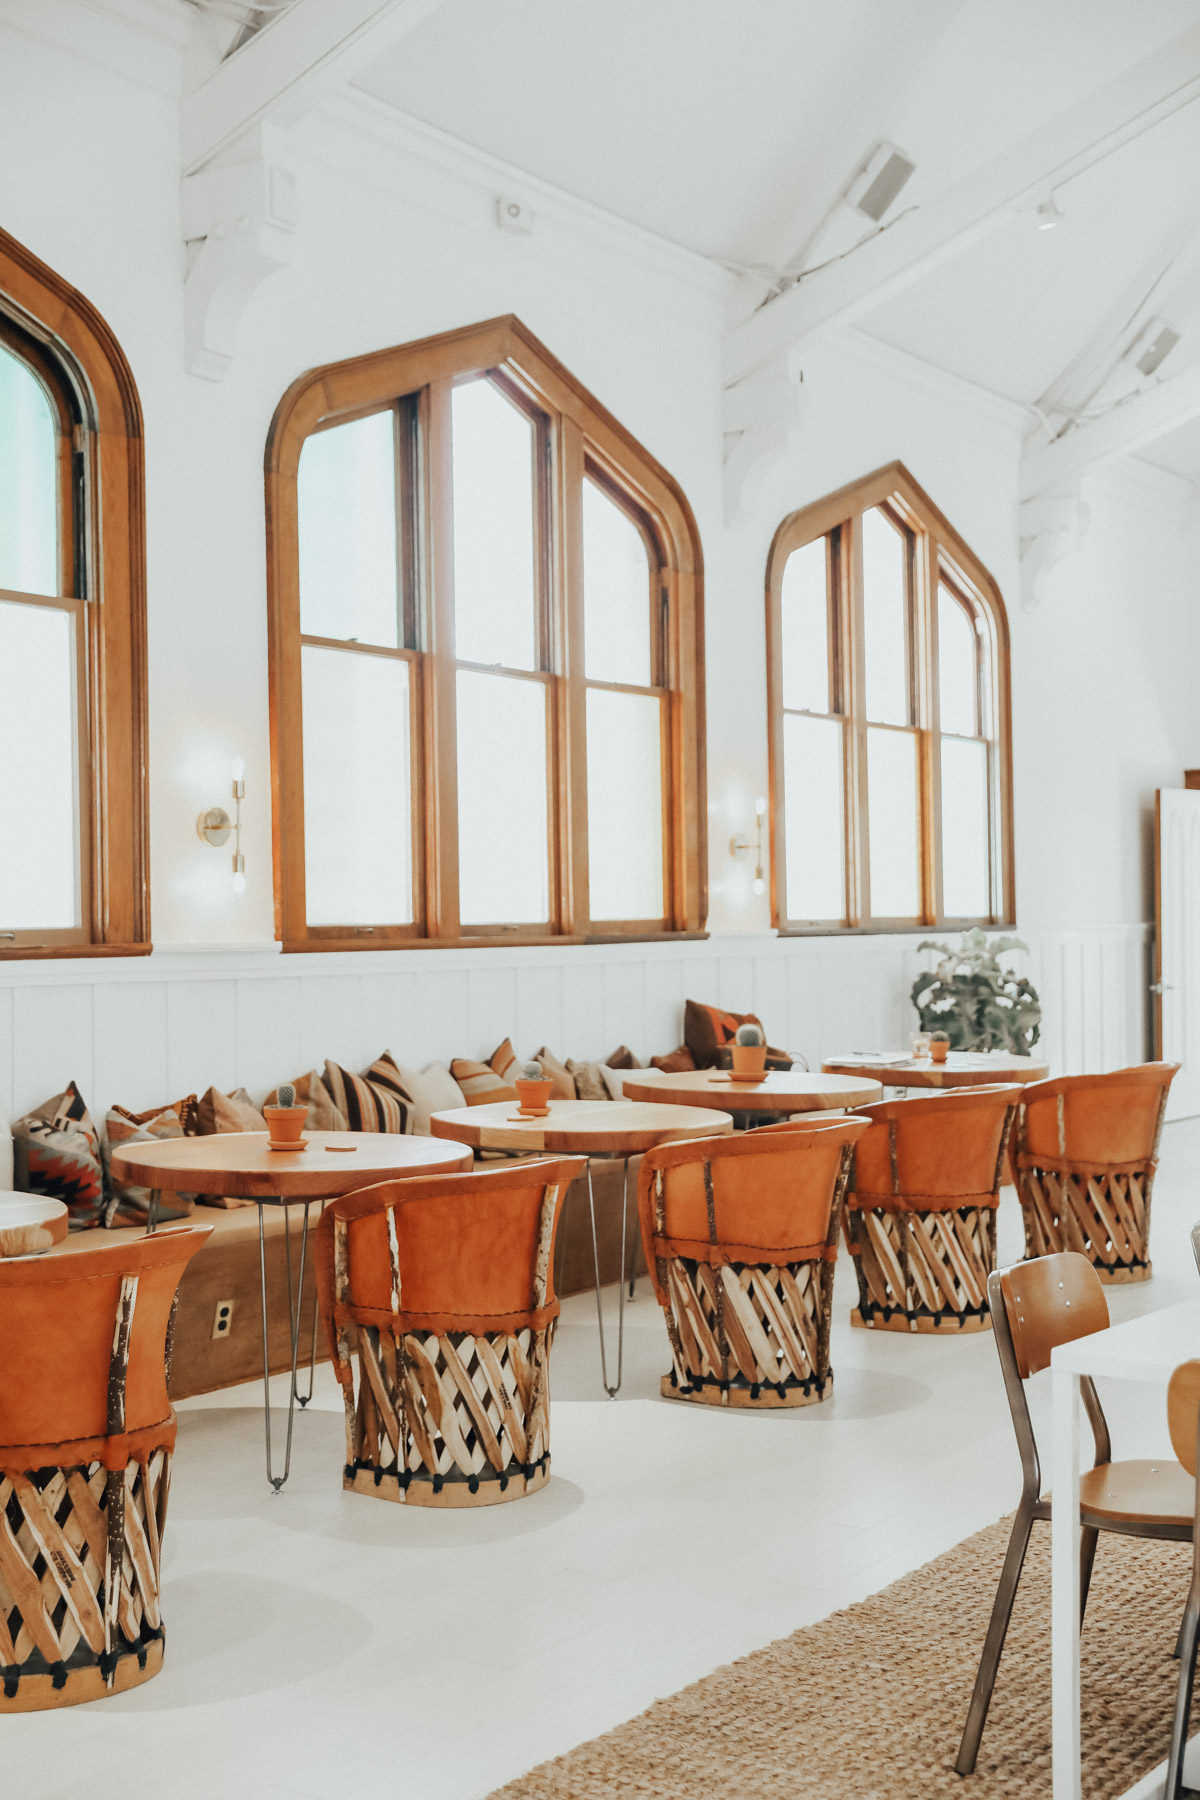 the assembly women's clubhouse coworking space in San Francisco photographed by Andrea Posadas for Advice from a 20 Something